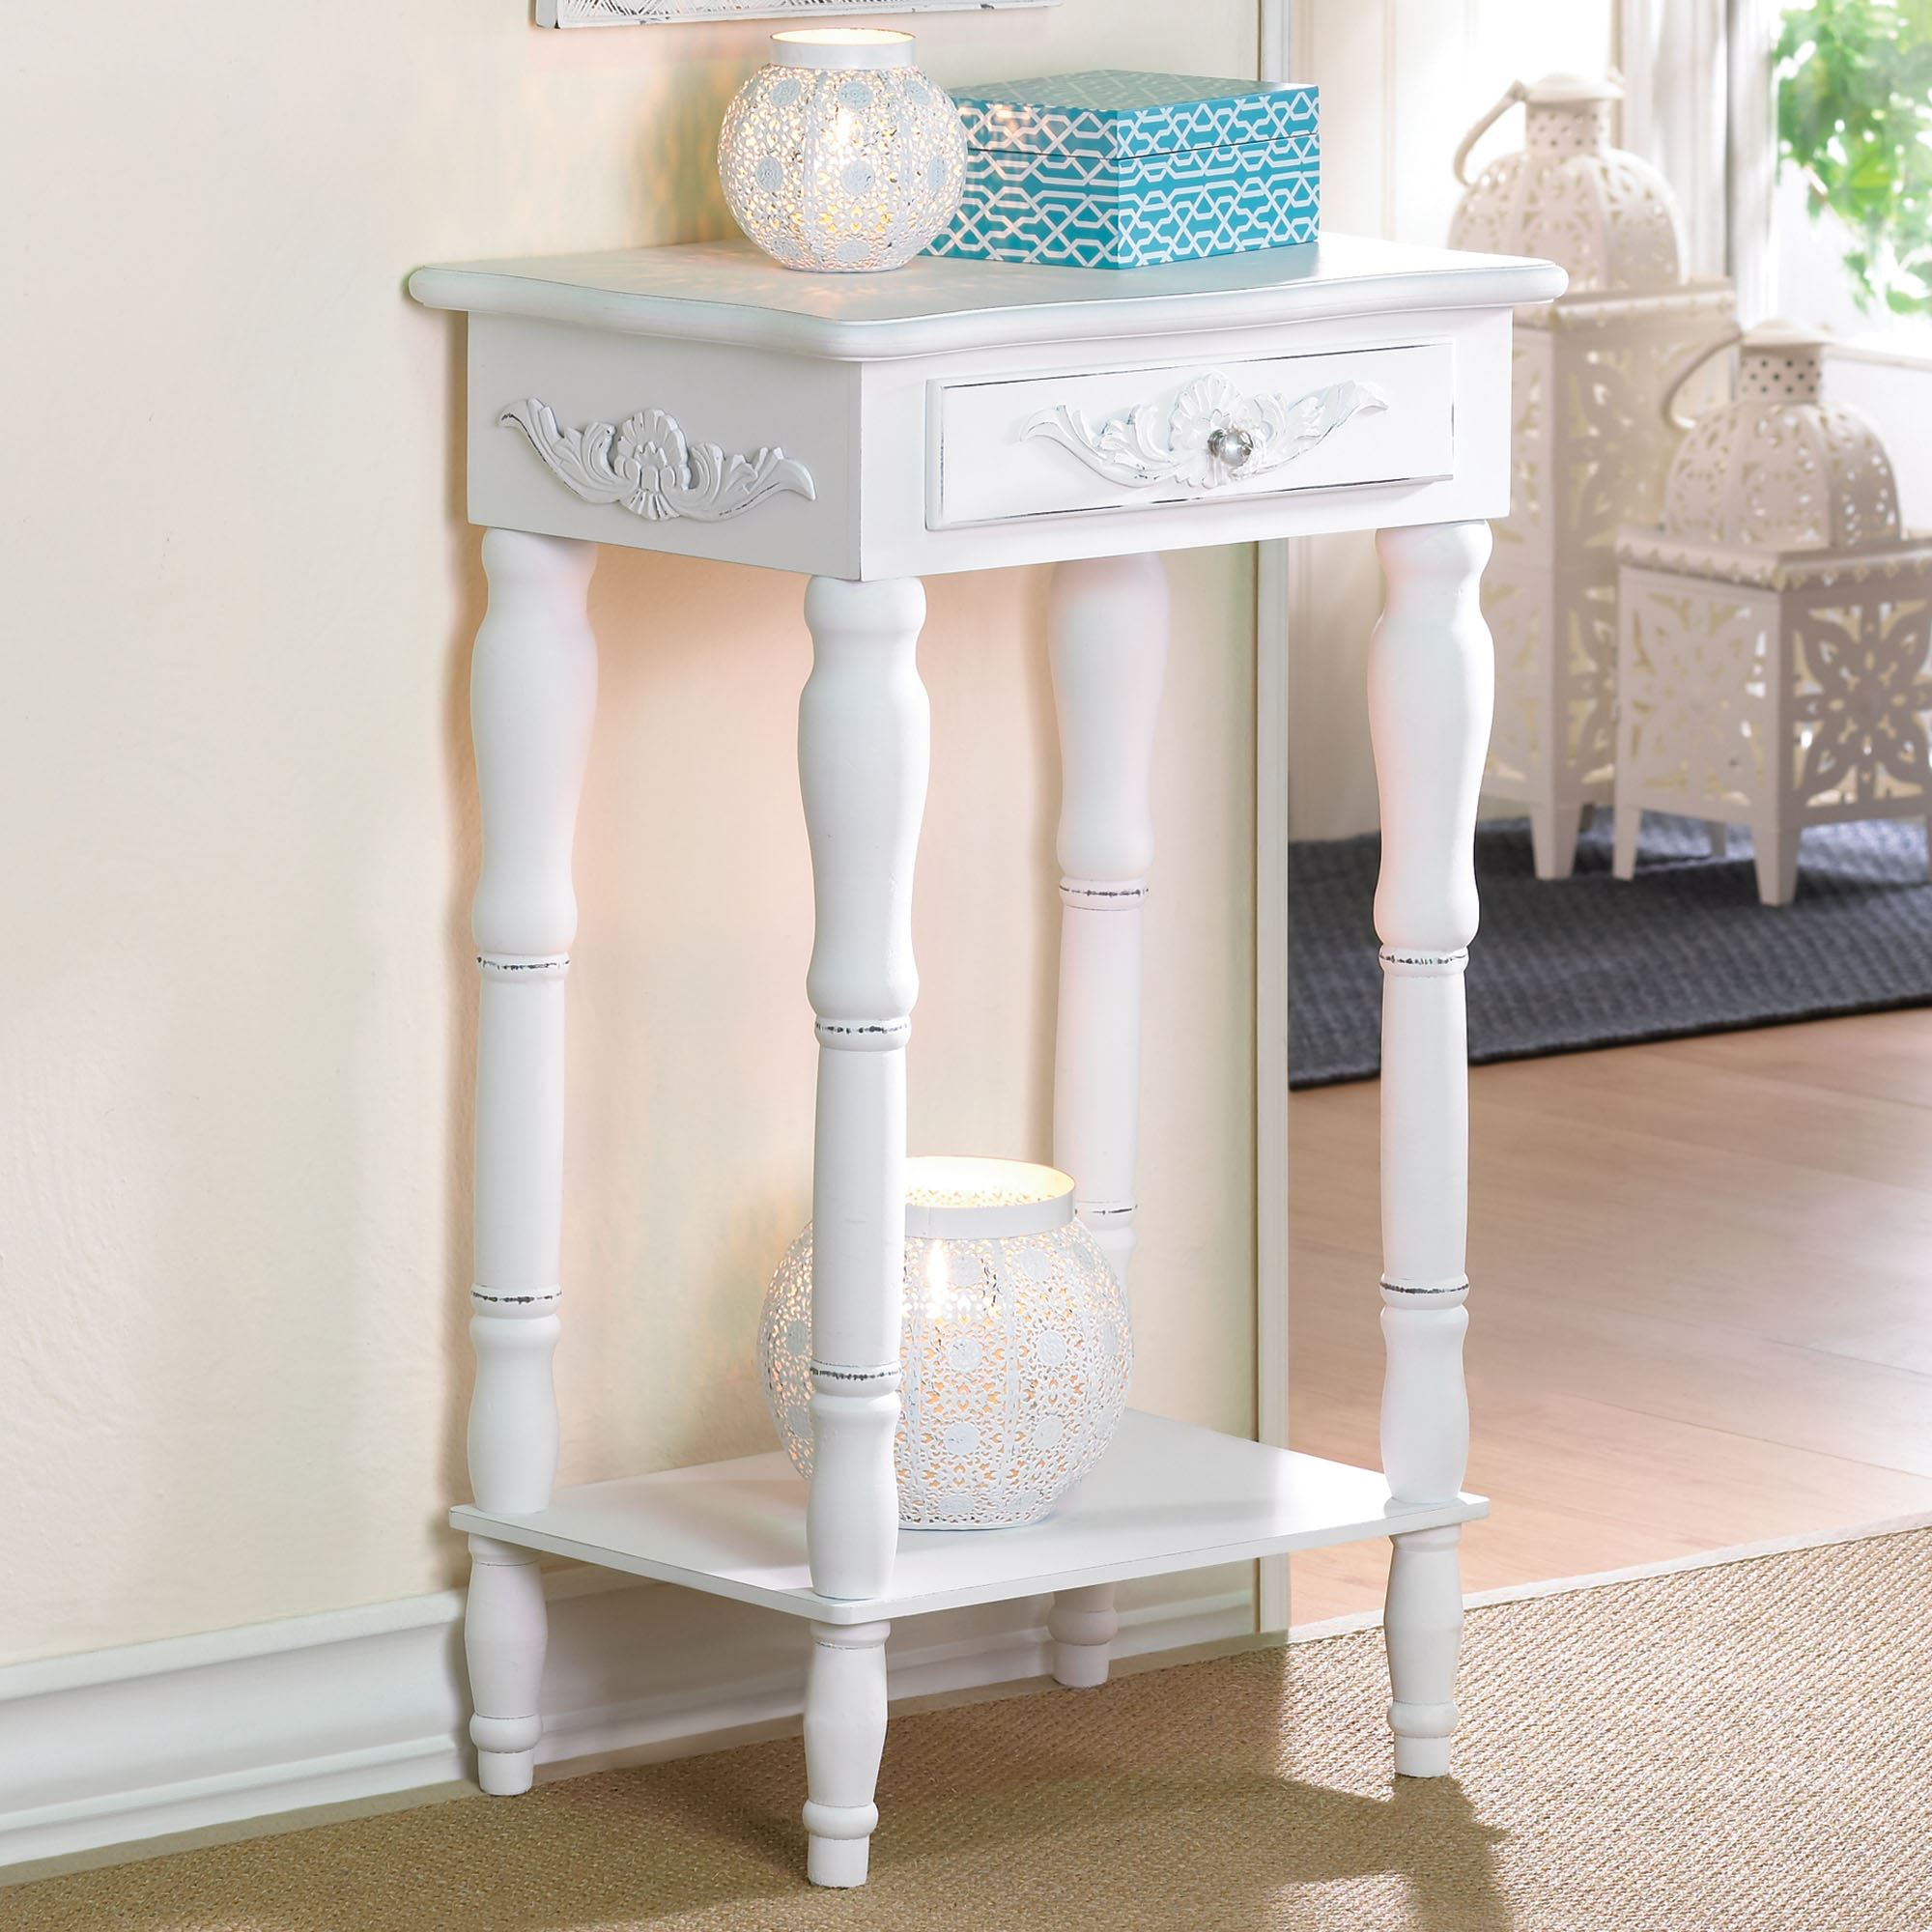 cosenza antique white accent table with drawer drawers touch zoom ikea cube storage round drum end ashley furniture king size beds garden chairs reasonably burgundy runner wrought